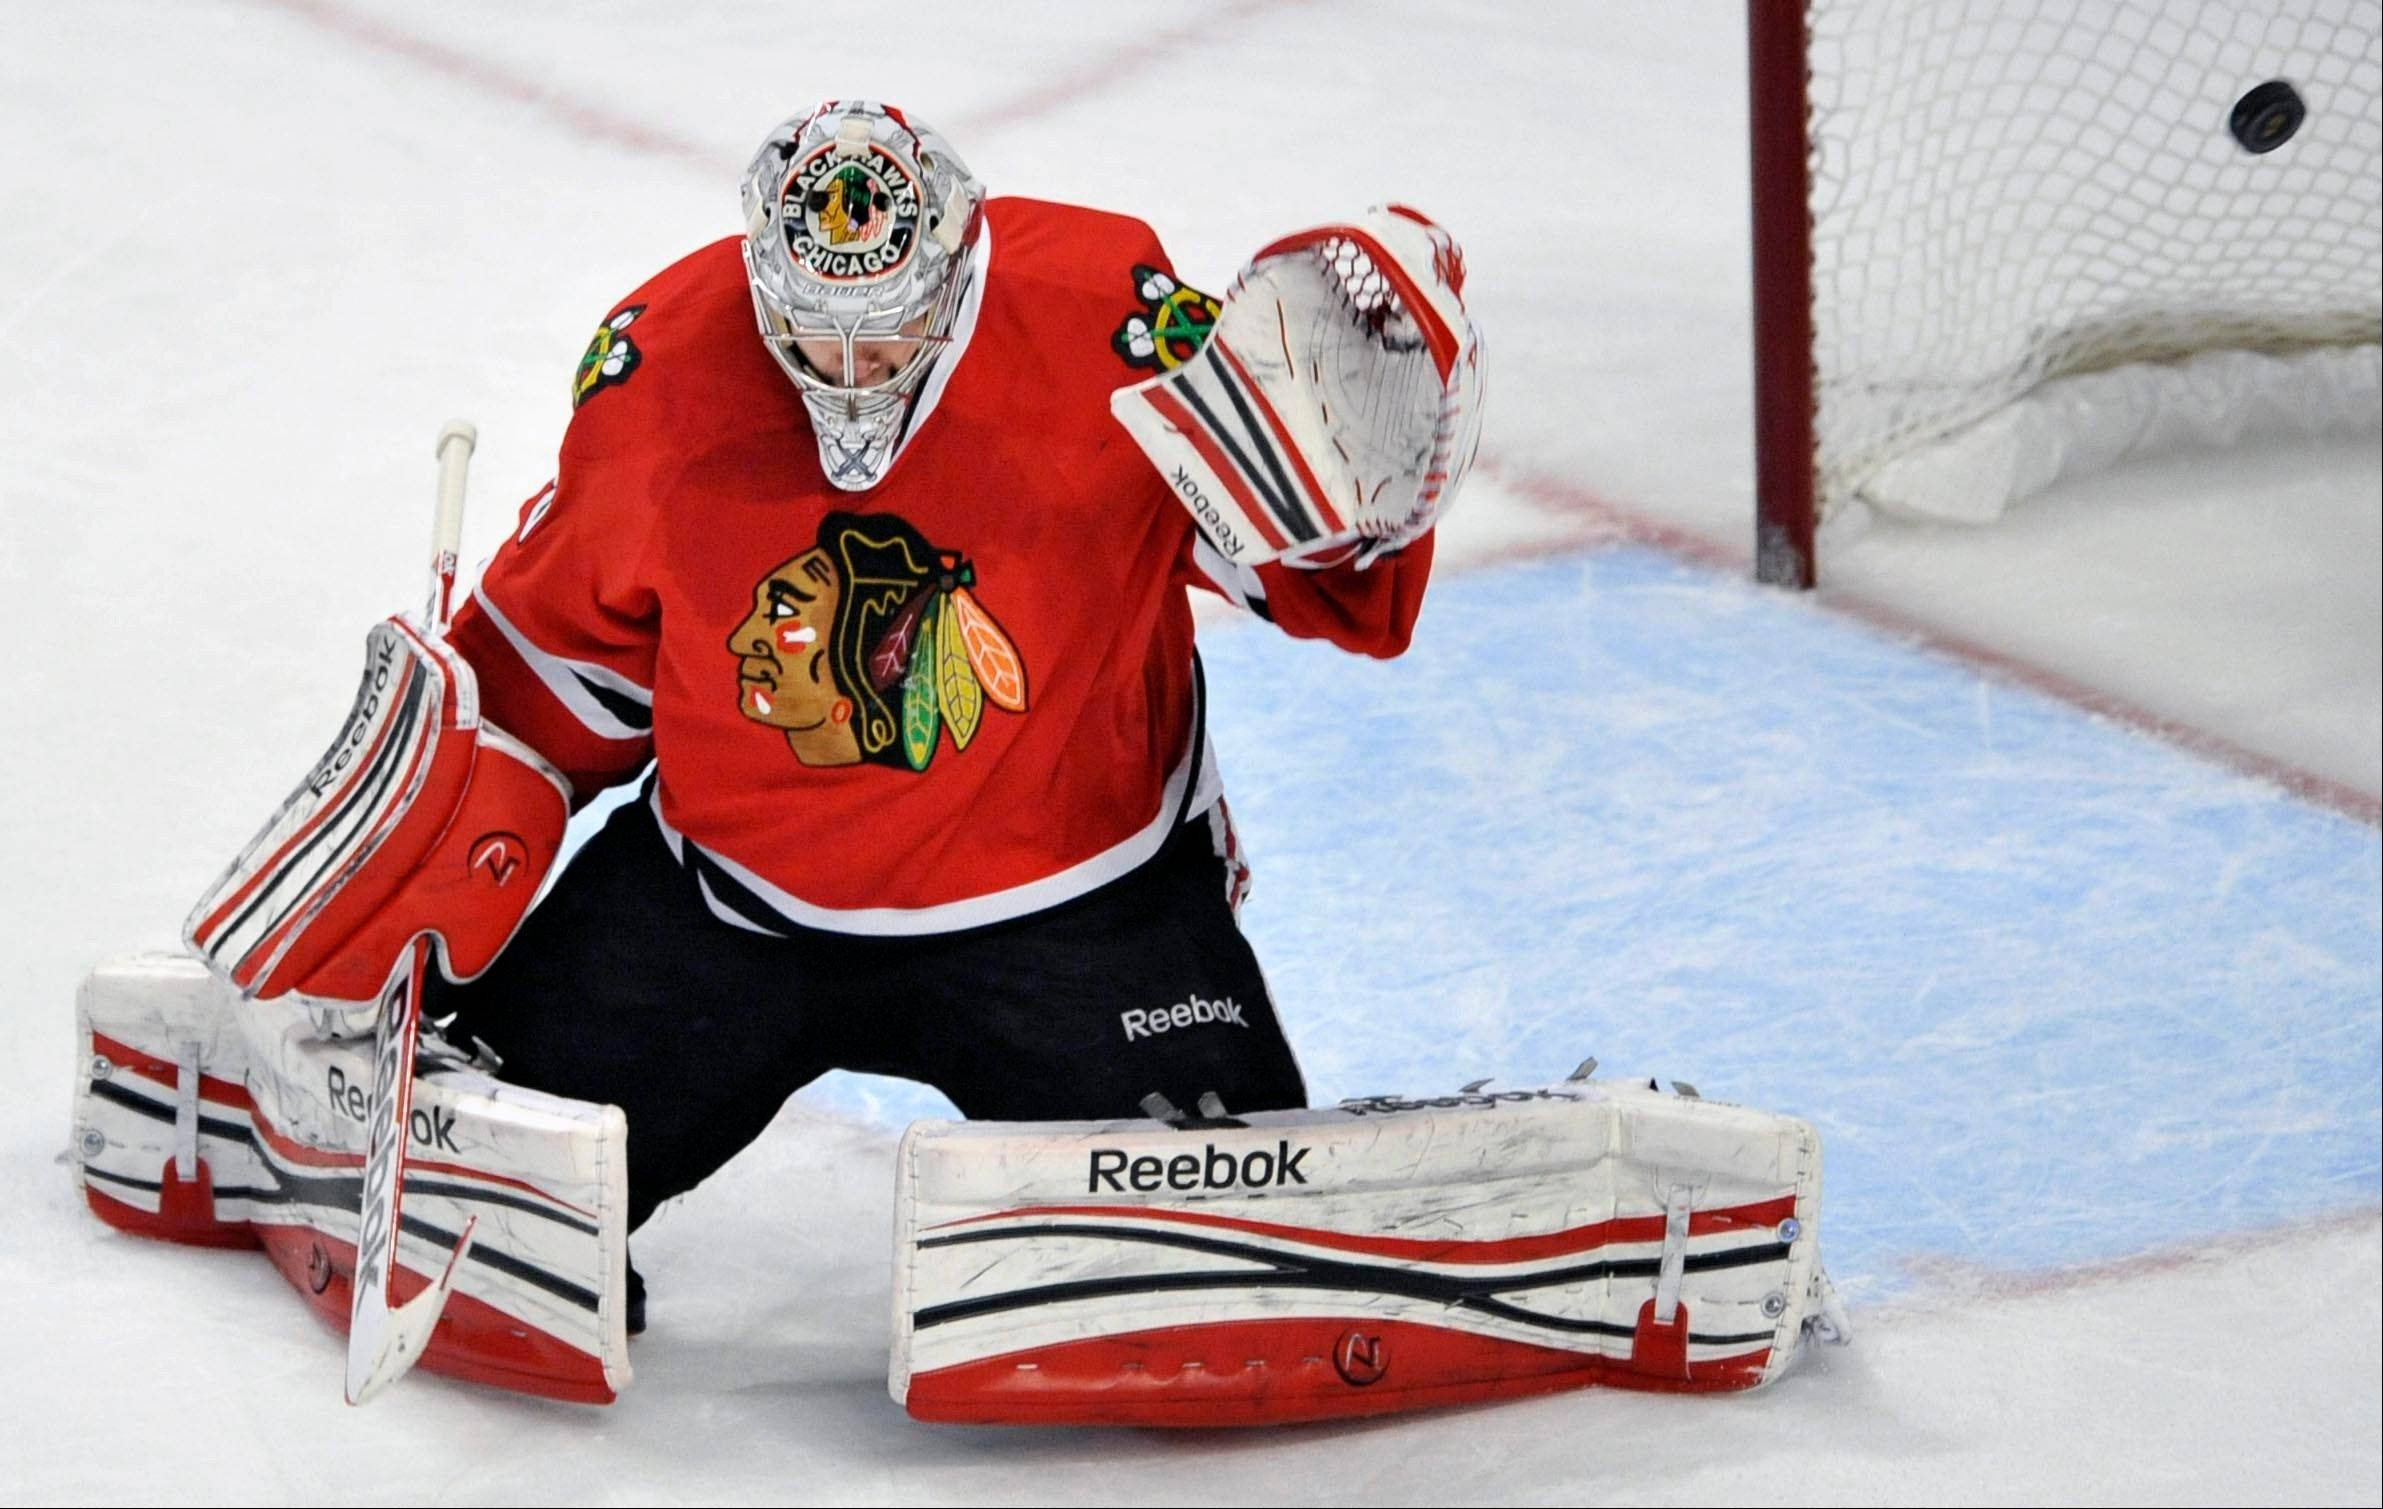 Chicago Blackhawks goalie Corey Crawford misses a goal scored by St. Louis Blues� Adam Cracknell during the first period of an NHL hockey game in Chicago, Thursday, April 4, 2013.